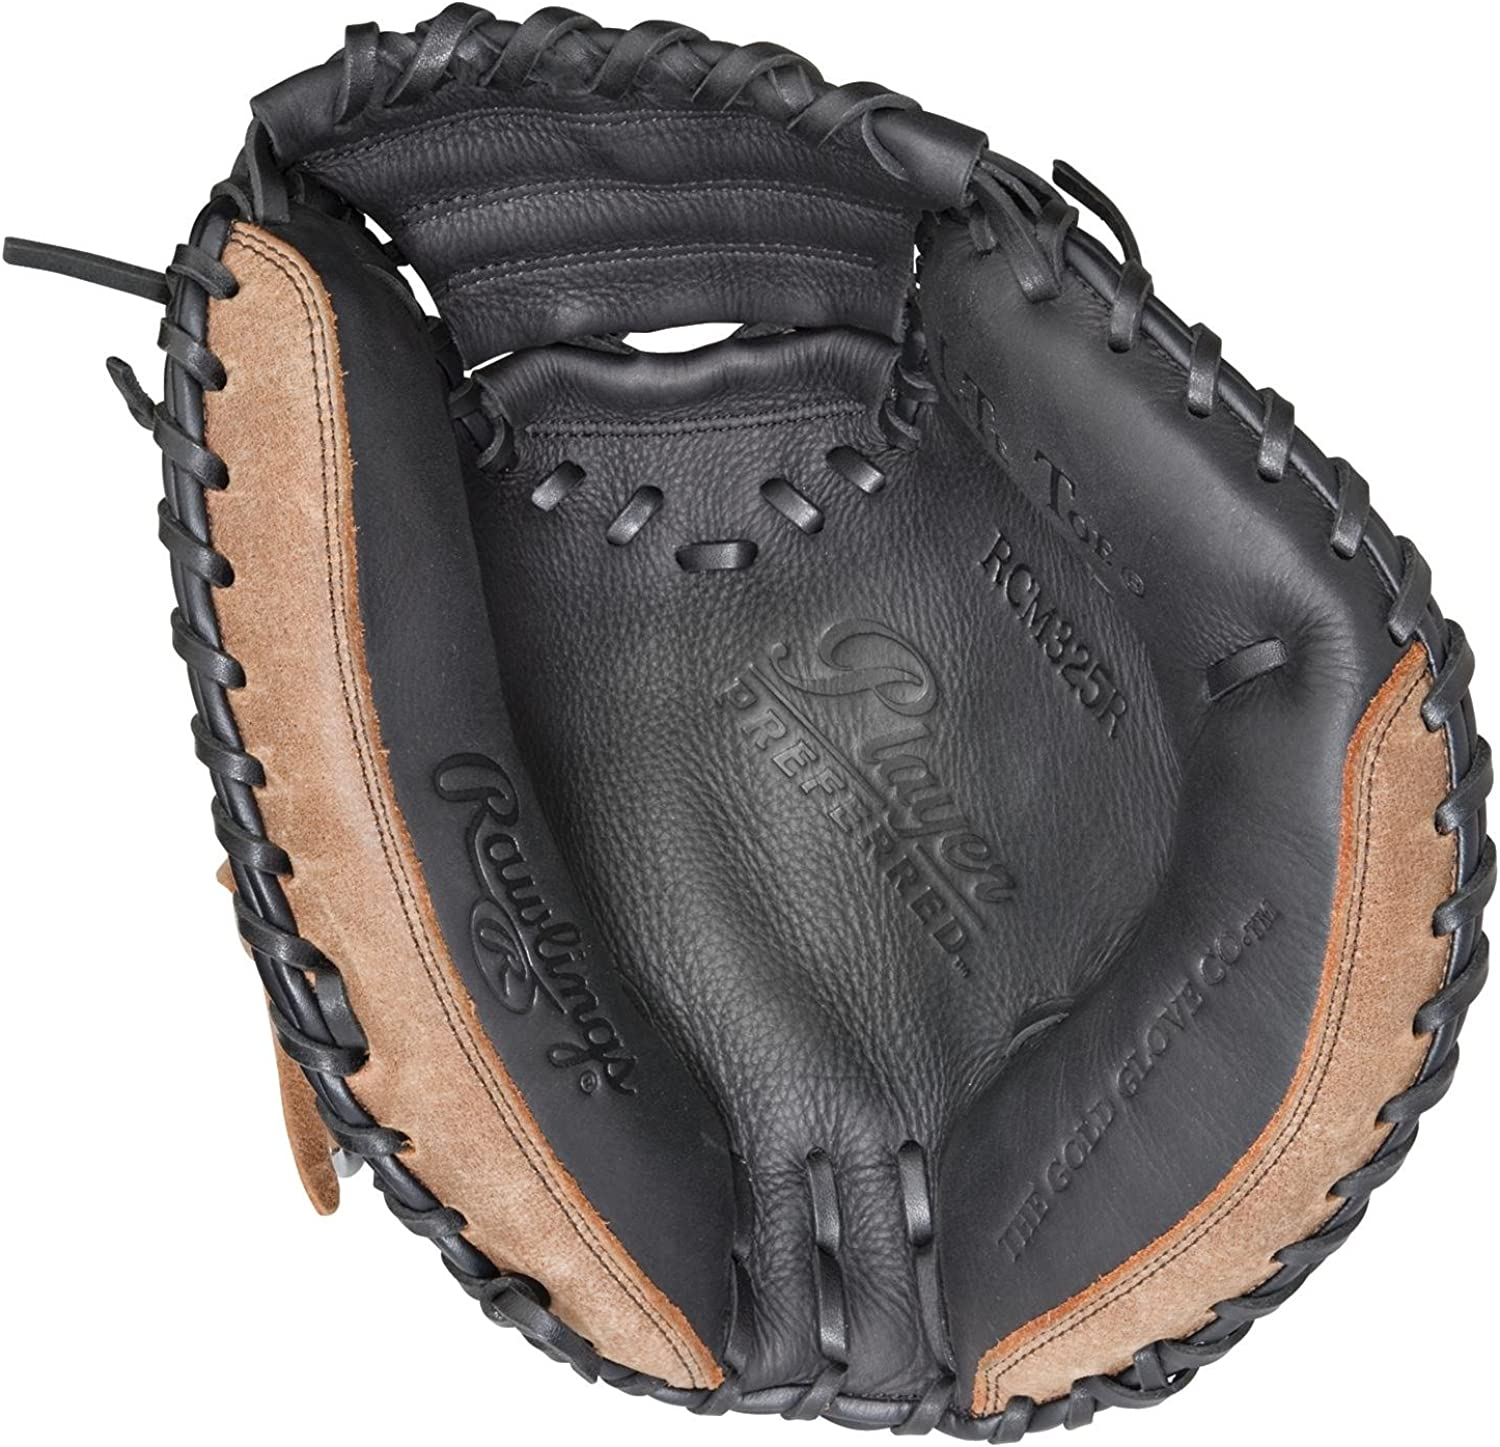 Rawlings Player Preferred Series 32.5inch Catcher's Mitt, RightHand Throw (RCM325R)